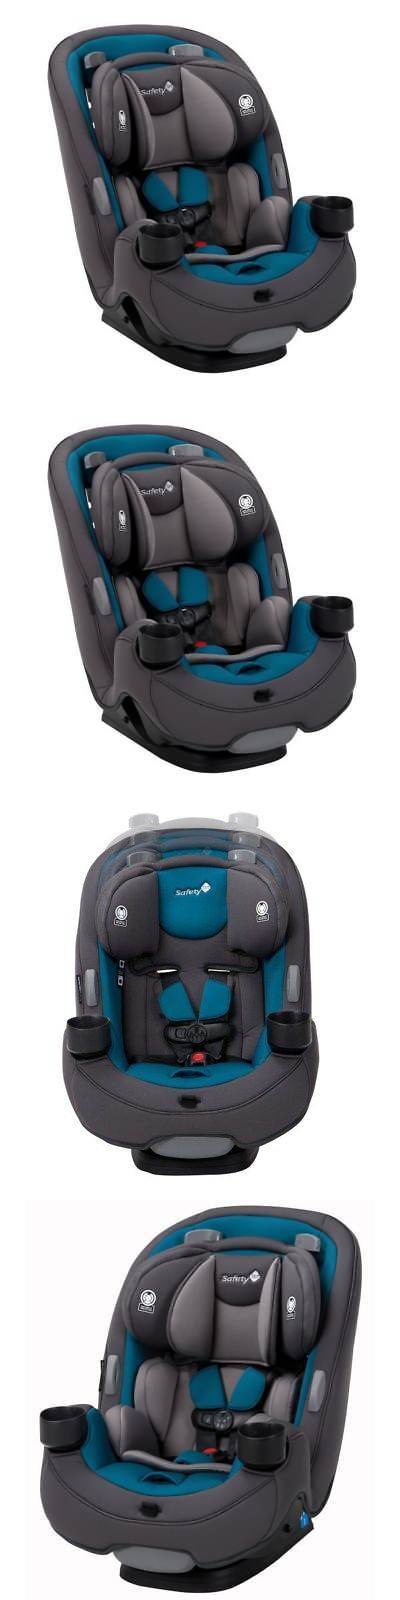 Safety 1st Guide 65 Convertible Car Seat Seaport CC078BJB